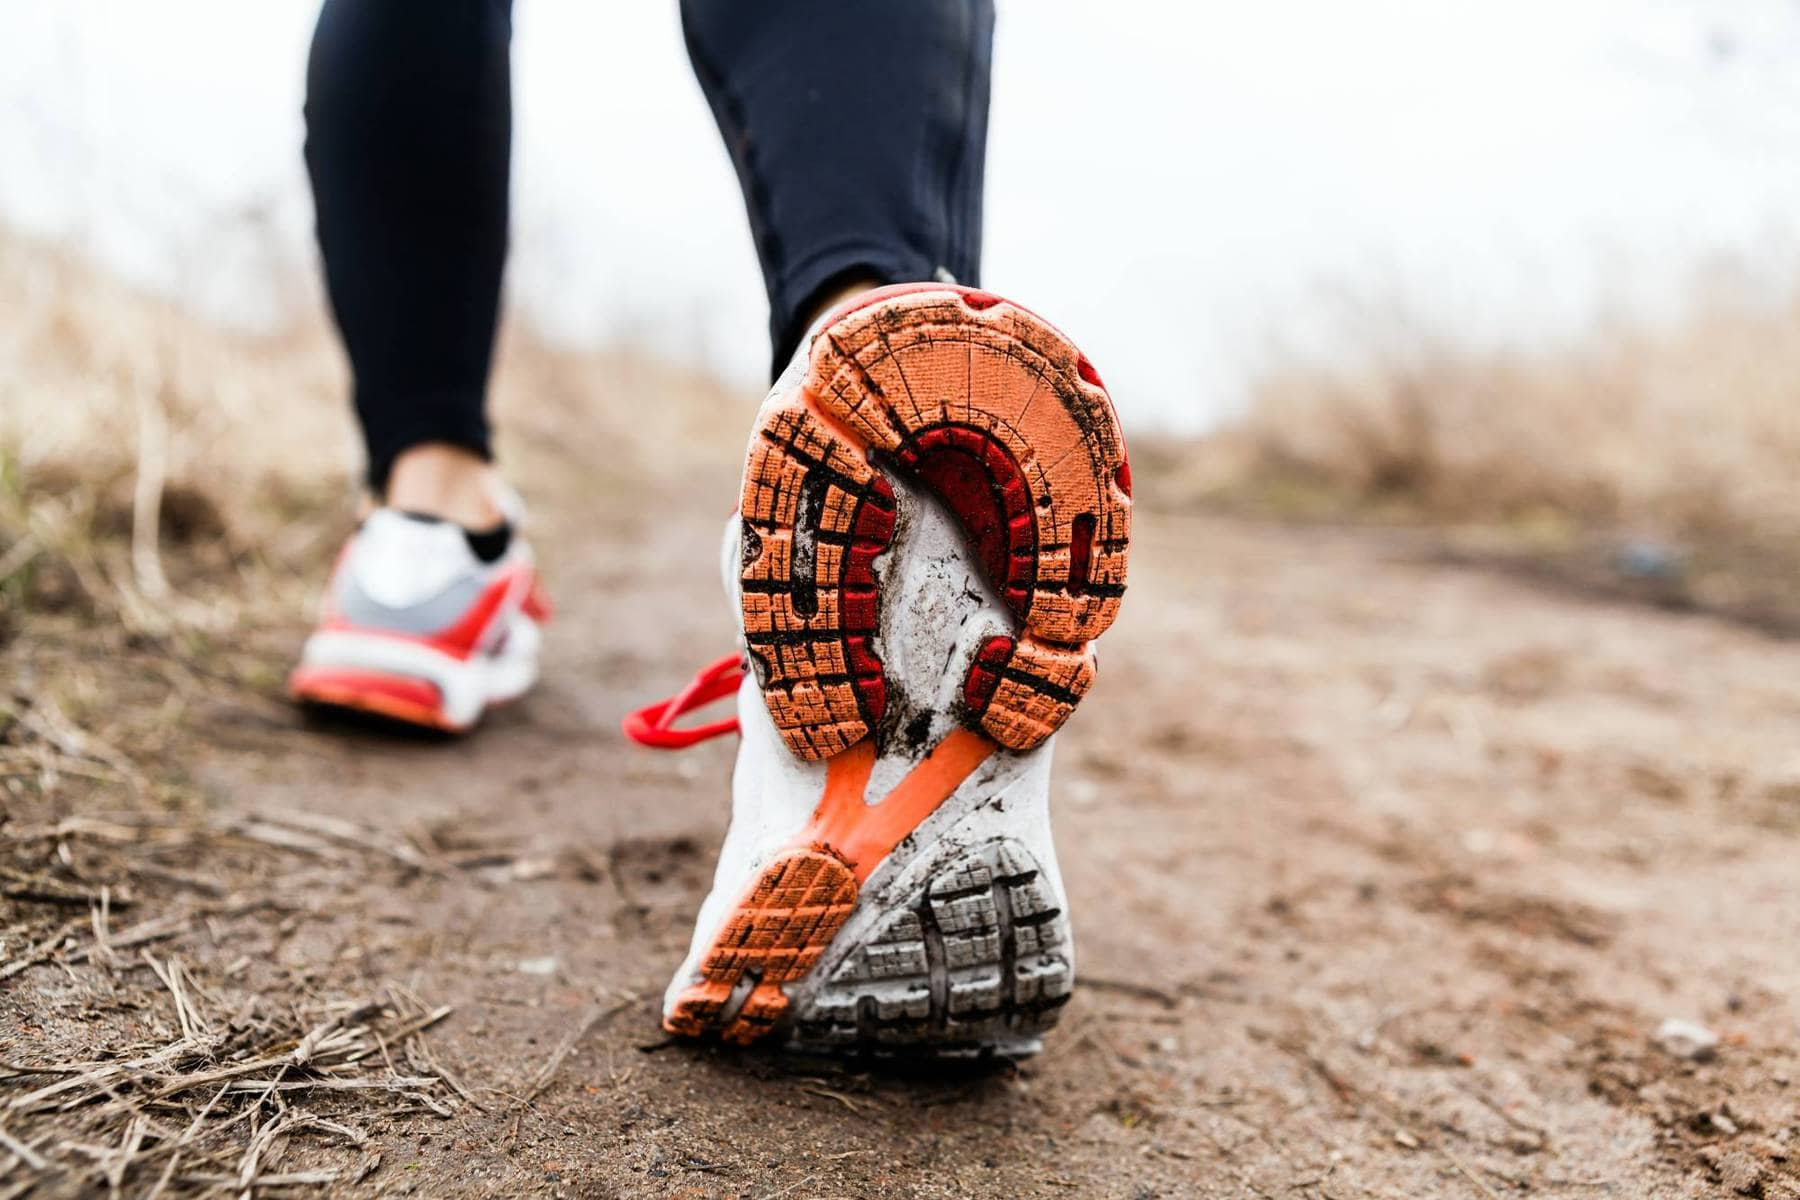 Selecting a new pair of running shoes for your next workout